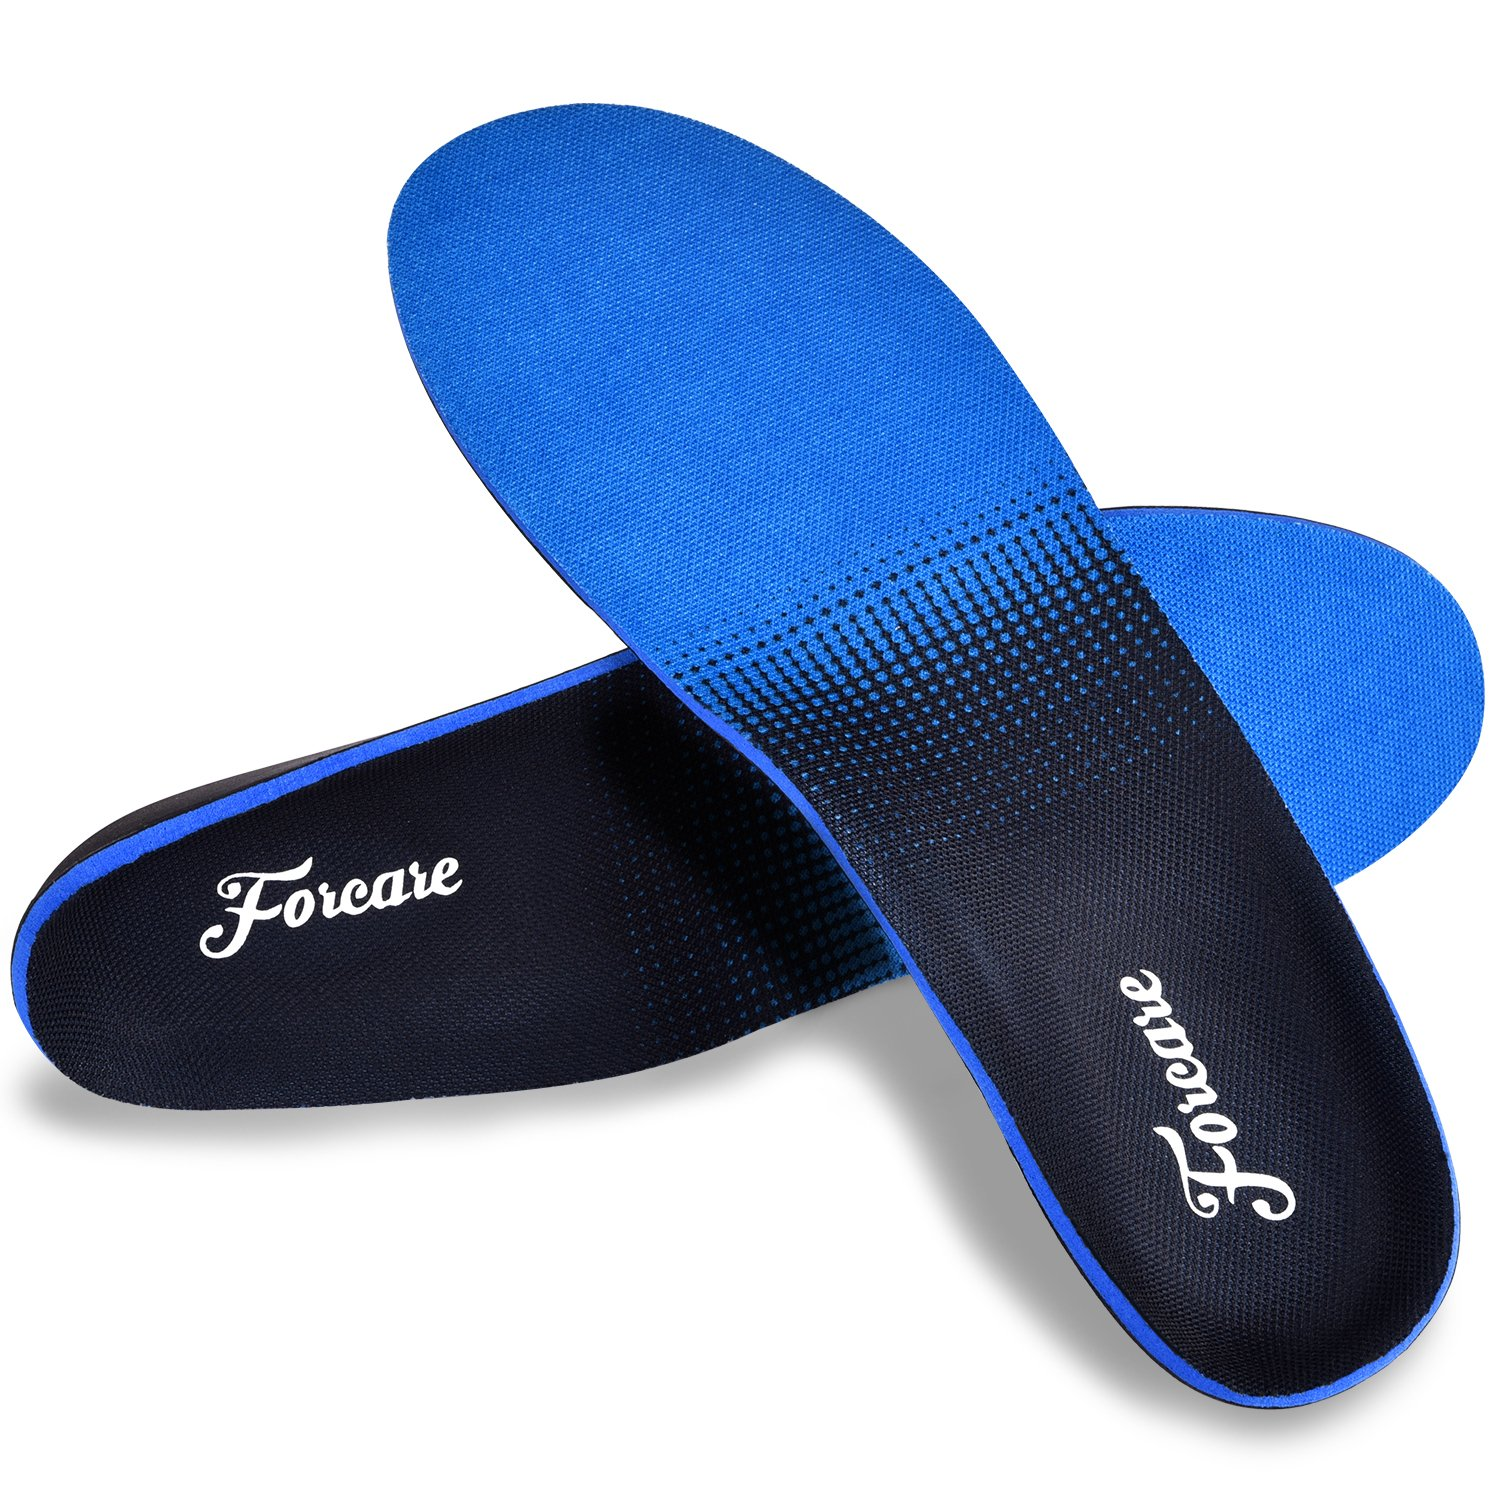 Orthotics for Flat Feet, Forcare Shoes Insoles with High Arch Support for Plantar Fasciitis Over-Pronation Heel Pain Relief (US Mens 8-8.5 | Womens 10-10.5) by Forcare (Image #1)